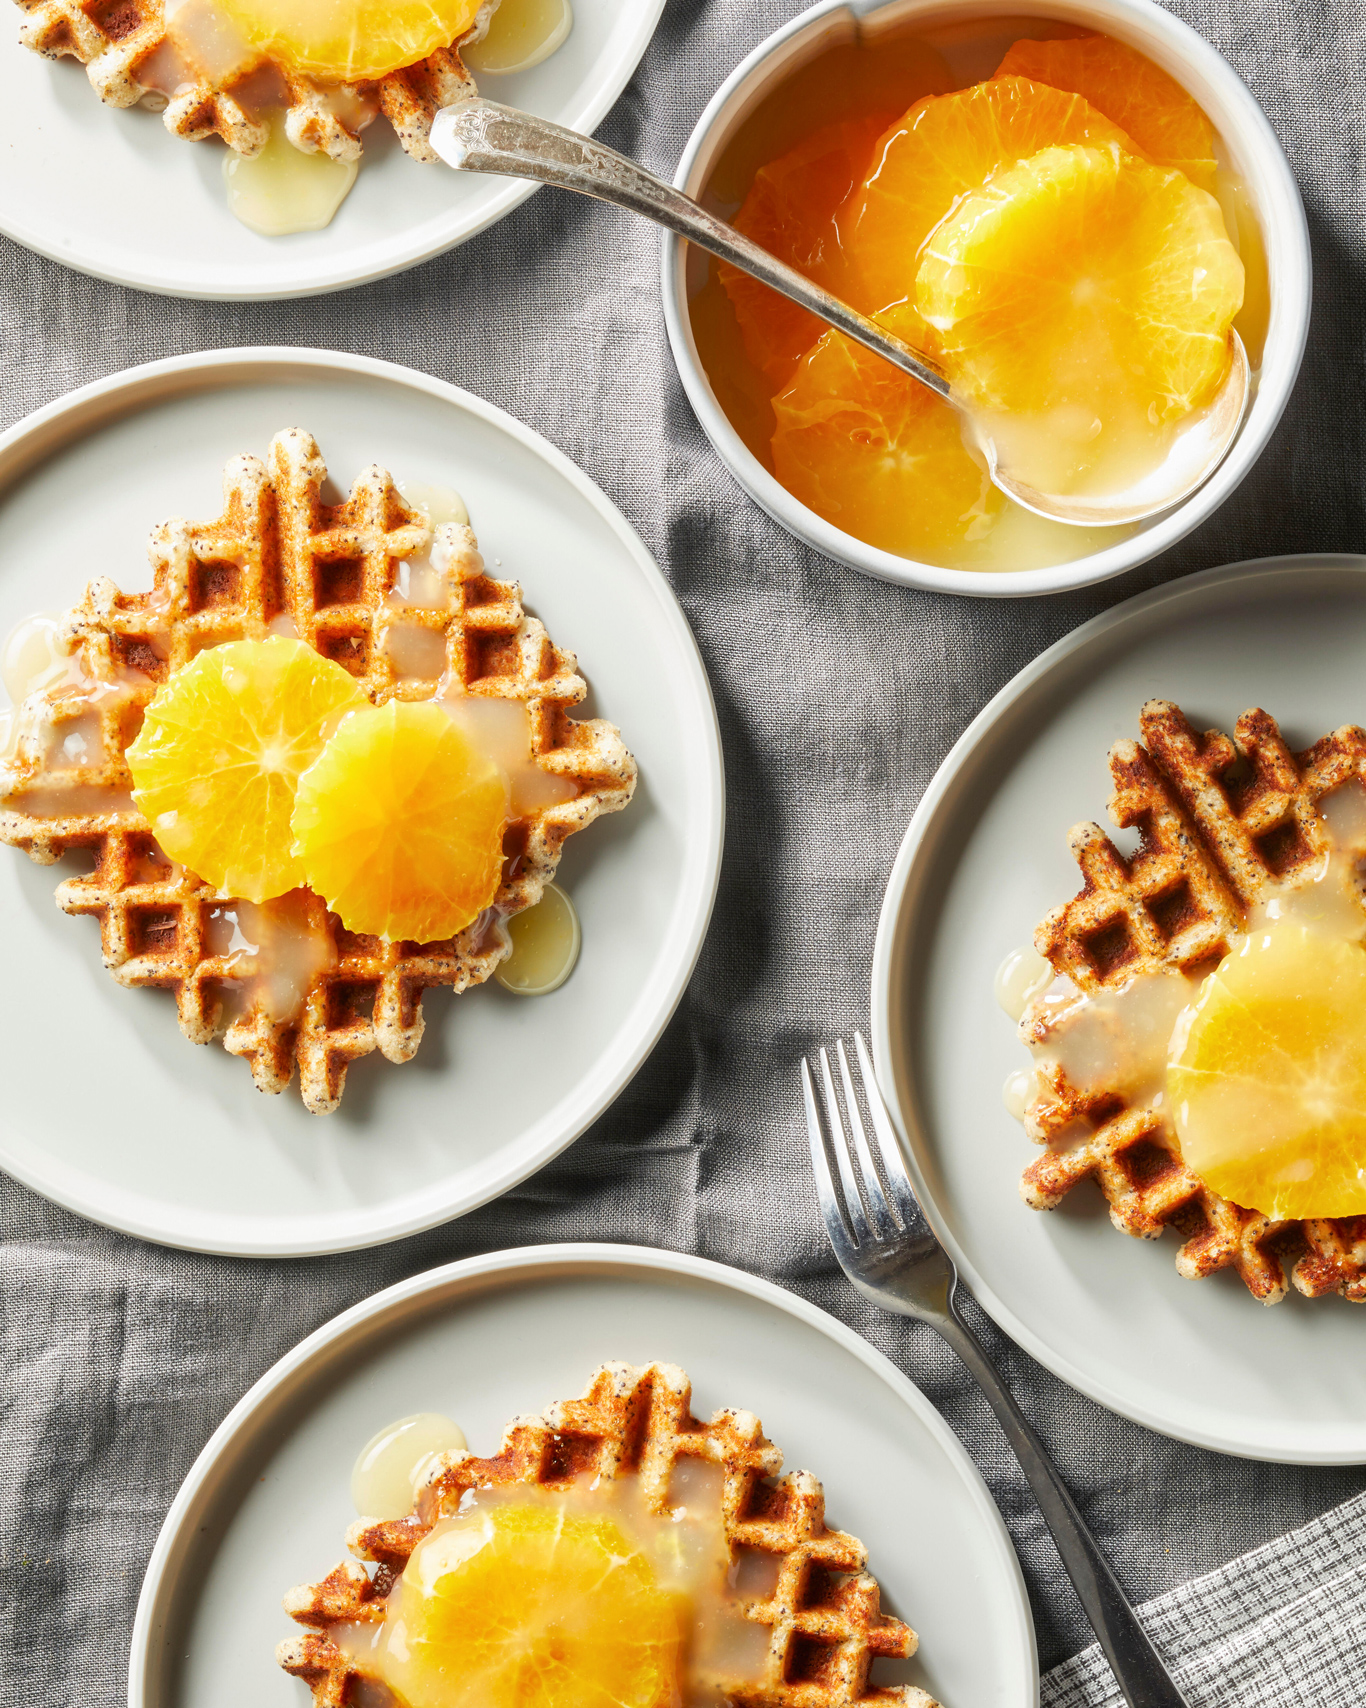 overhead view of Poppy Seed Oat Waffles with Citrus Syrup on white plates